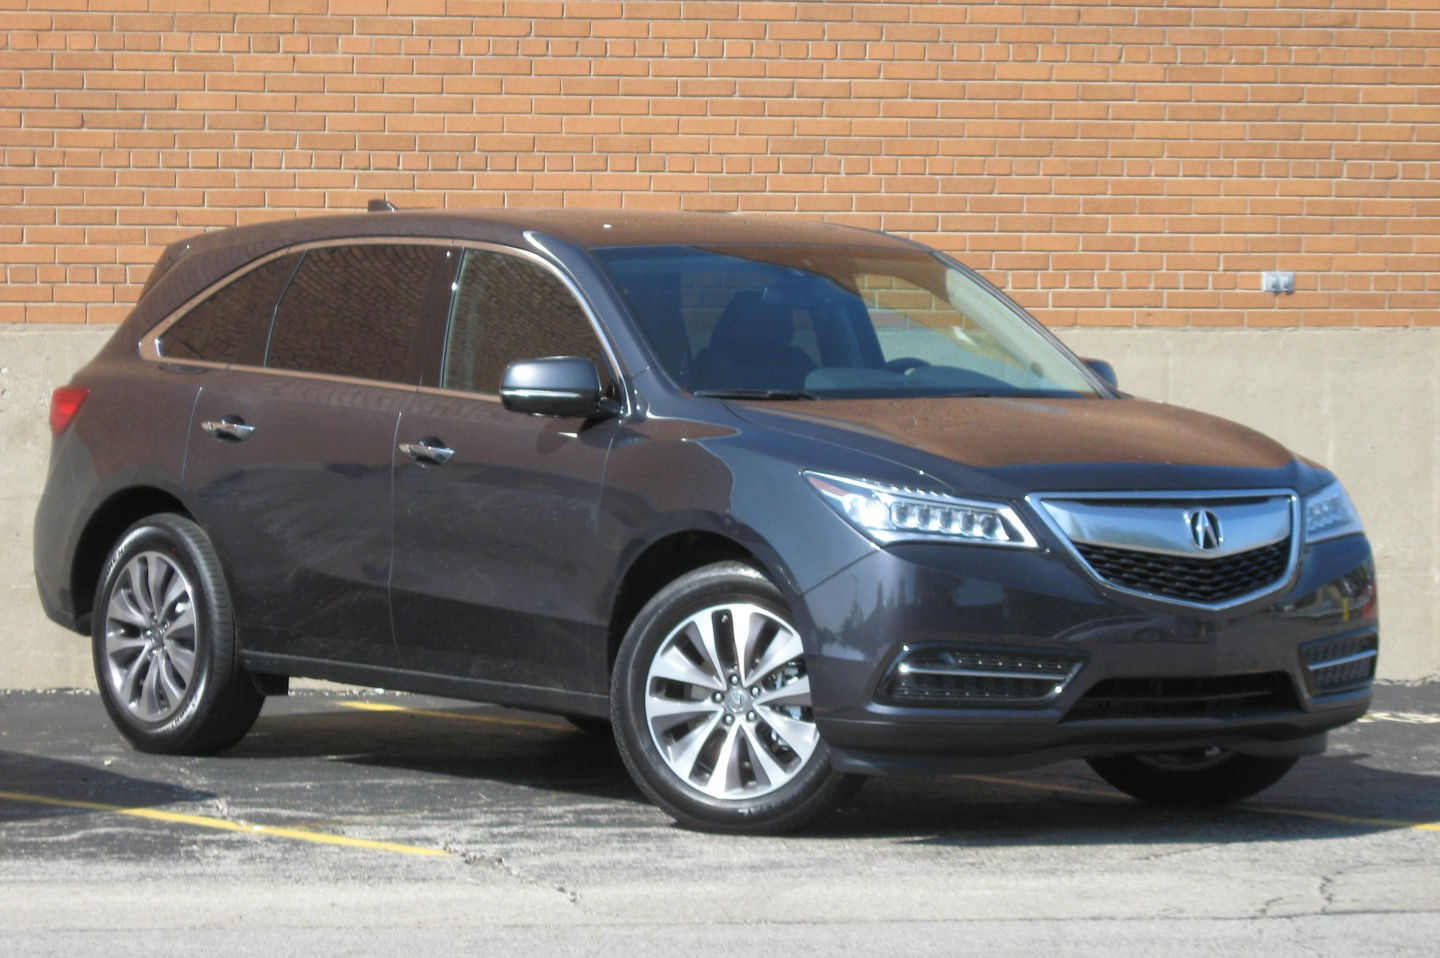 image version package third official views press click for generation acura name present forum forums larger with mdx release advance price